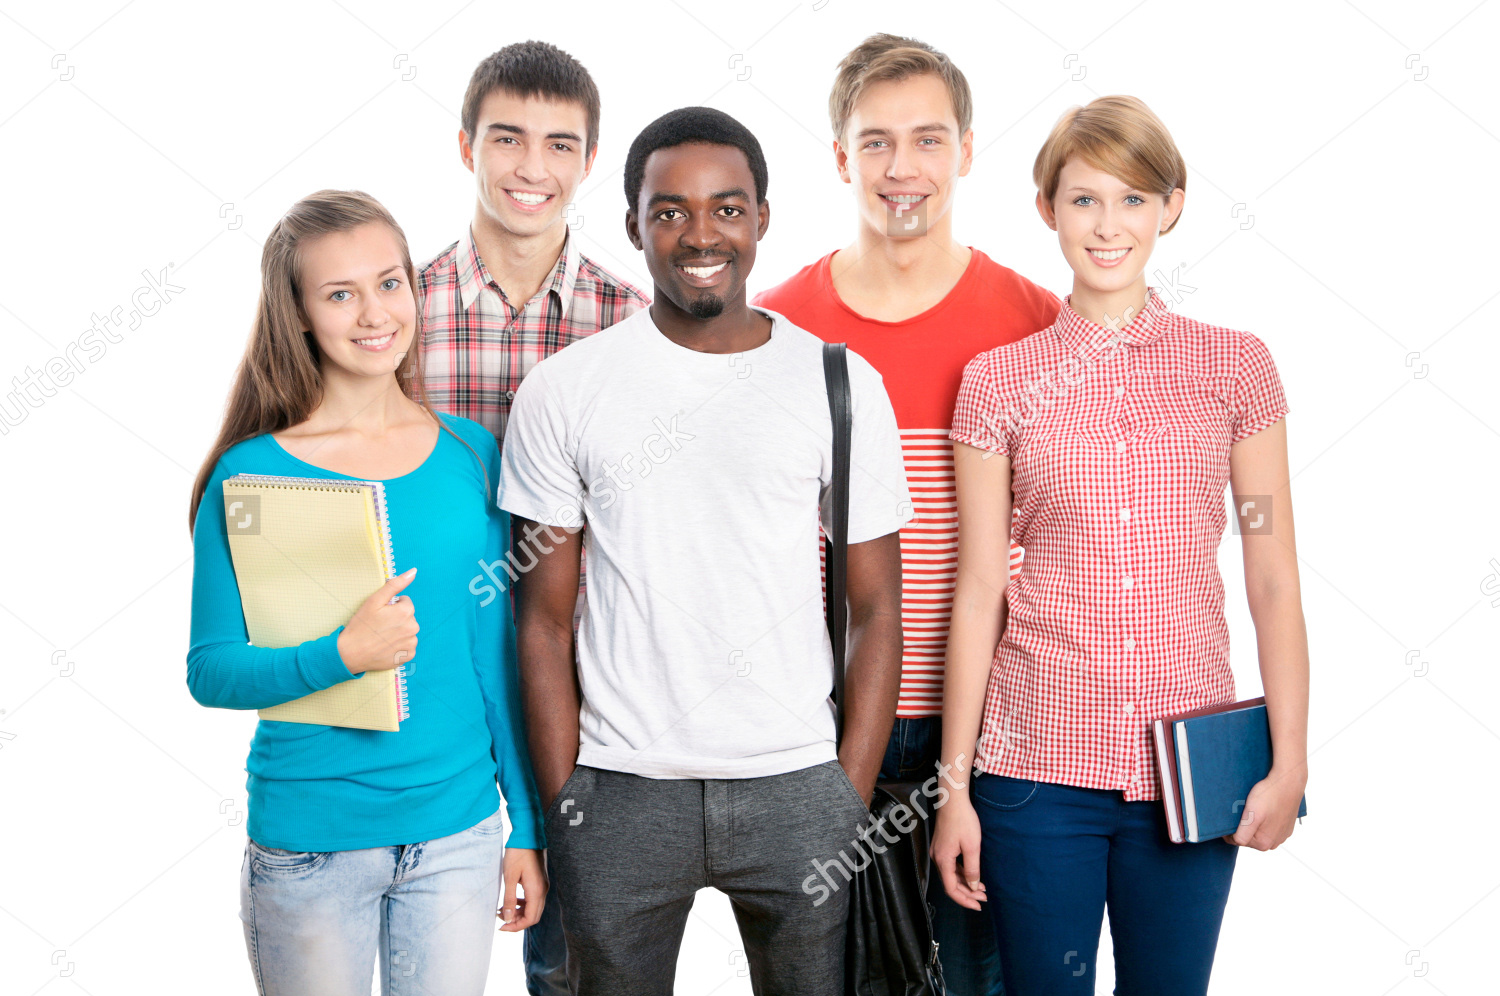 stock-photo-international-group-of-happy-young-students-115476556